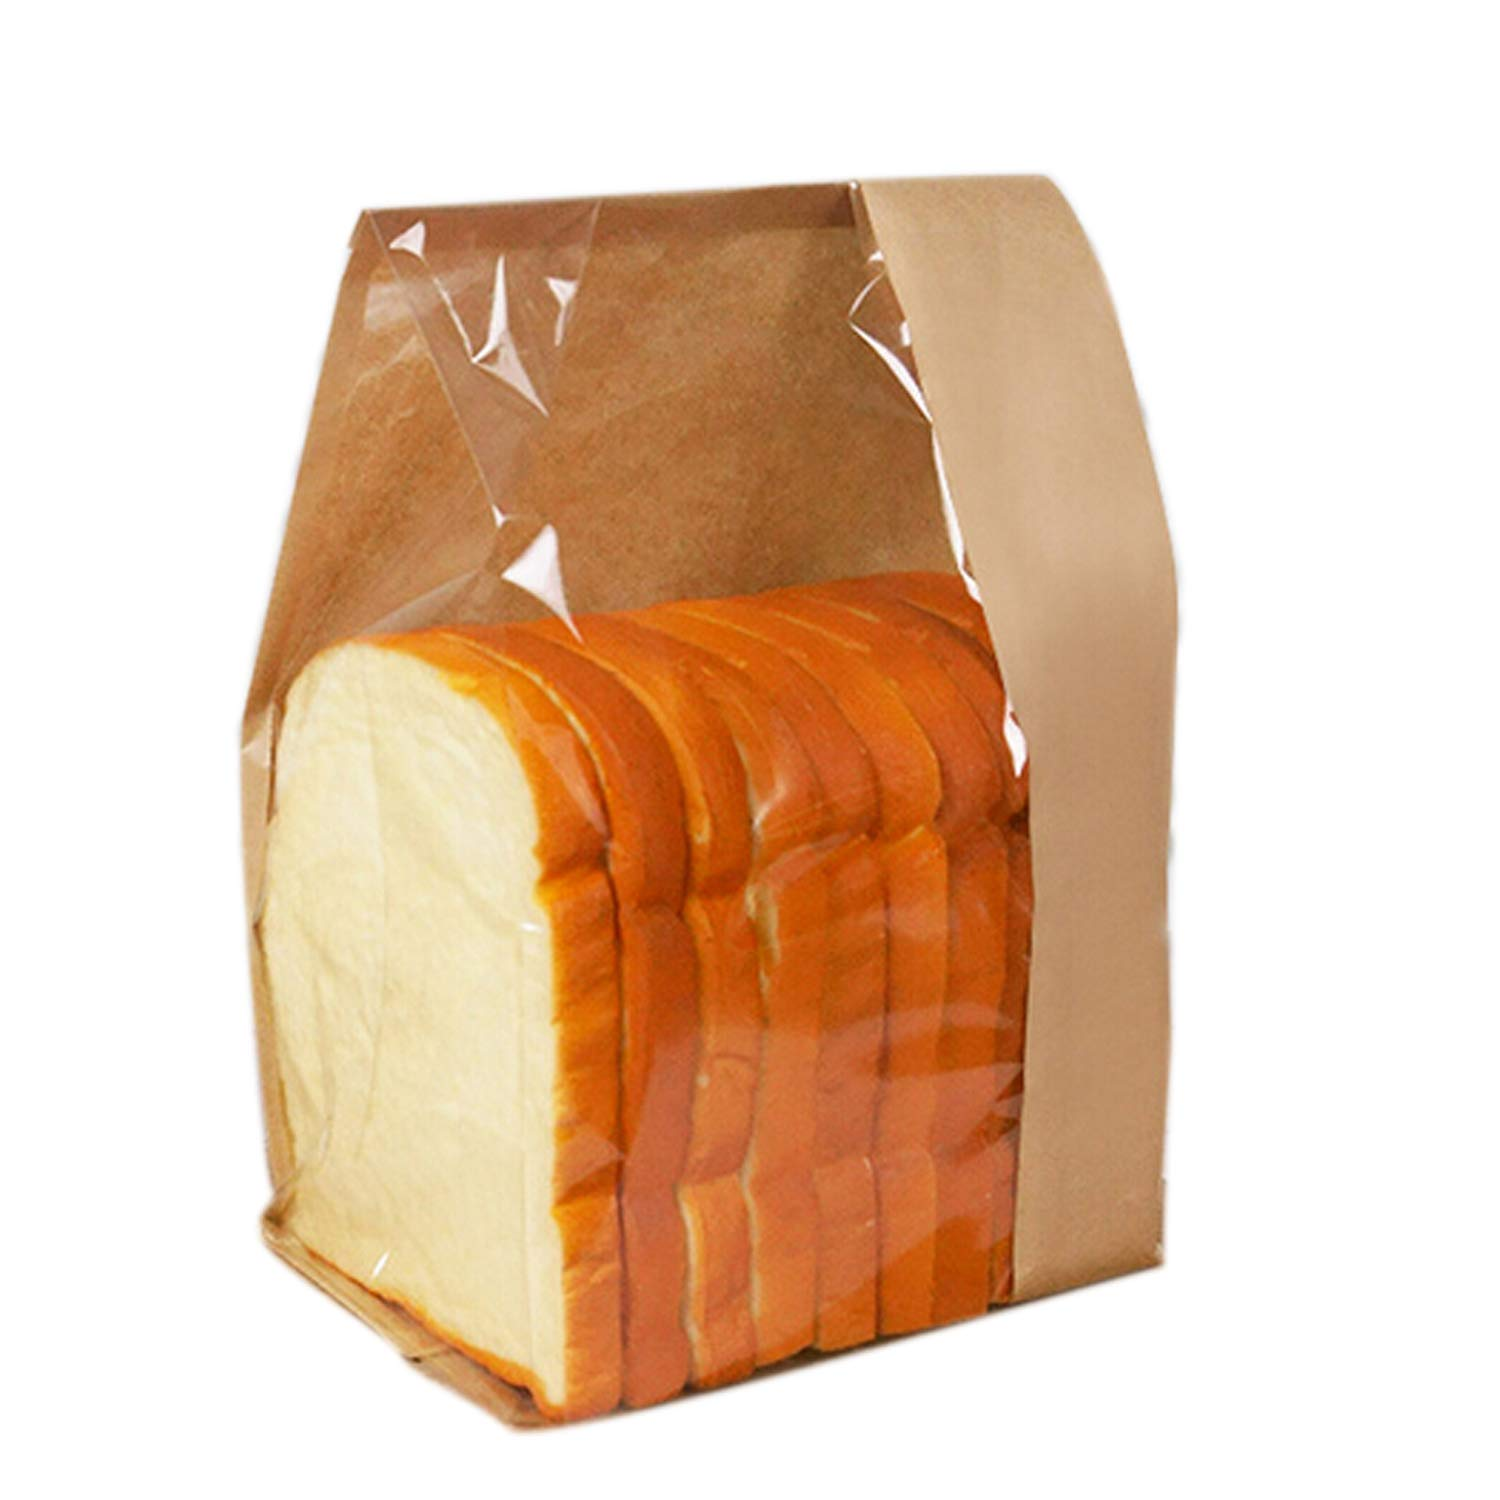 Pack of 50 Paper Bread Loaf Bag Kraft Food Packaging Storage Bakery Toast Bag with Front Window, Label Seal Sticker Included (12.8''Lx 6.5''Wx 4''H)